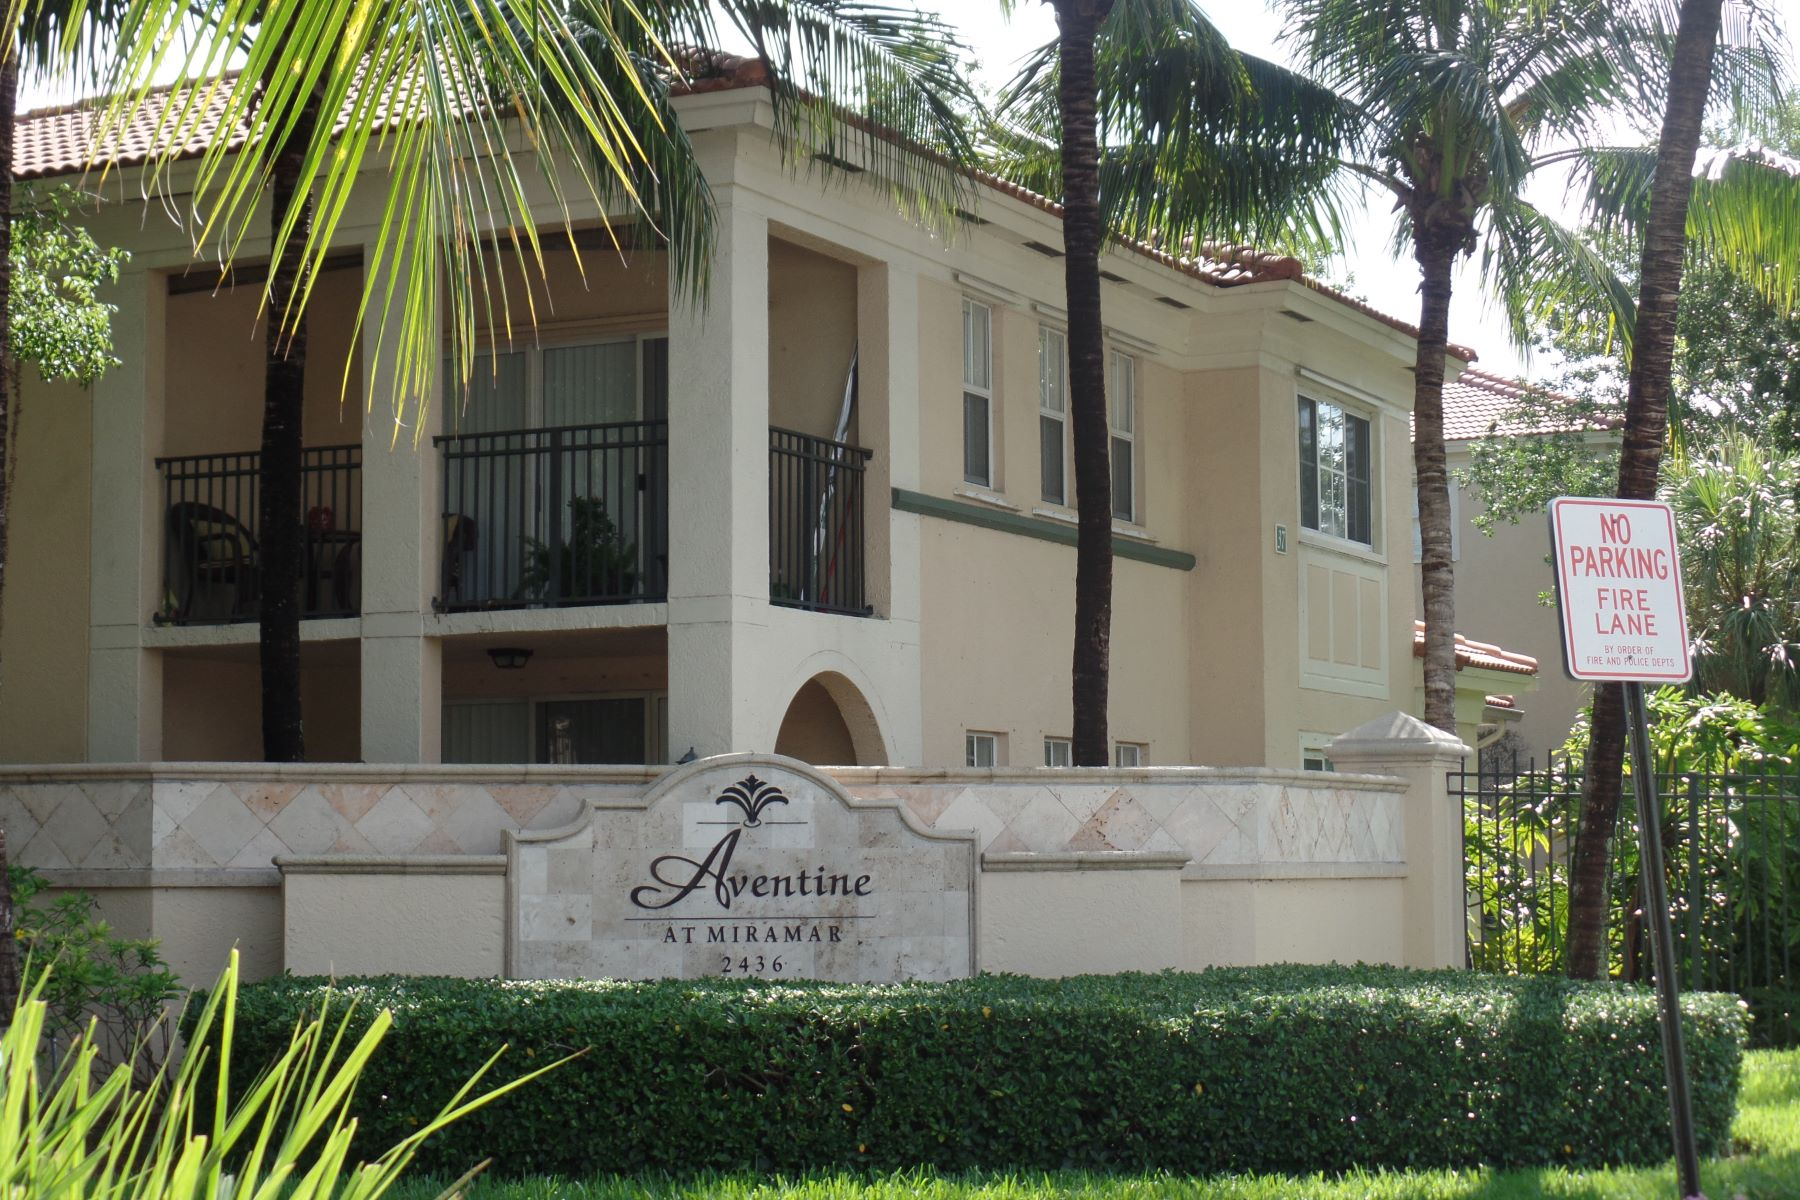 Condominium for Rent at 2548 Centergate Dr. # 107 Miramar, Florida 33025 United States